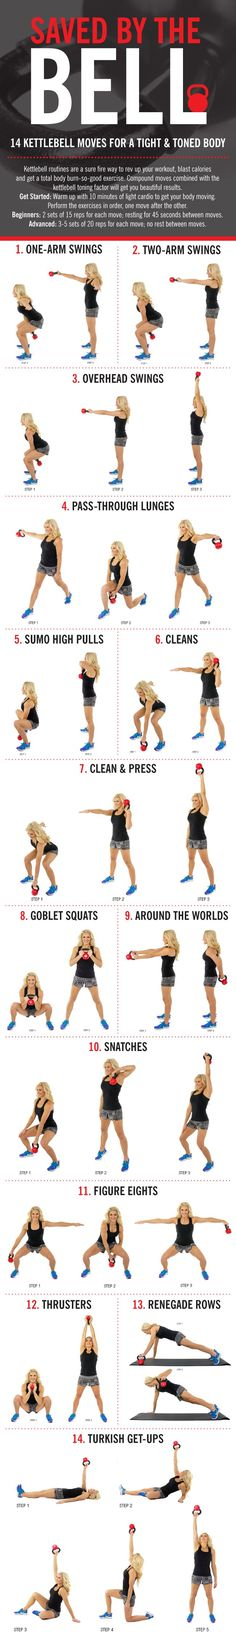 Kettlebell Moves for an All-Over Body Calorie Torcher Get ready to feel the burn with this kettlebell workout.Get ready to feel the burn with this kettlebell workout. Fitness Workouts, Fitness Diet, At Home Workouts, Health Fitness, Fitness Weightloss, Ball Workouts, Cardio Workouts, Health Diet, Iyengar Yoga